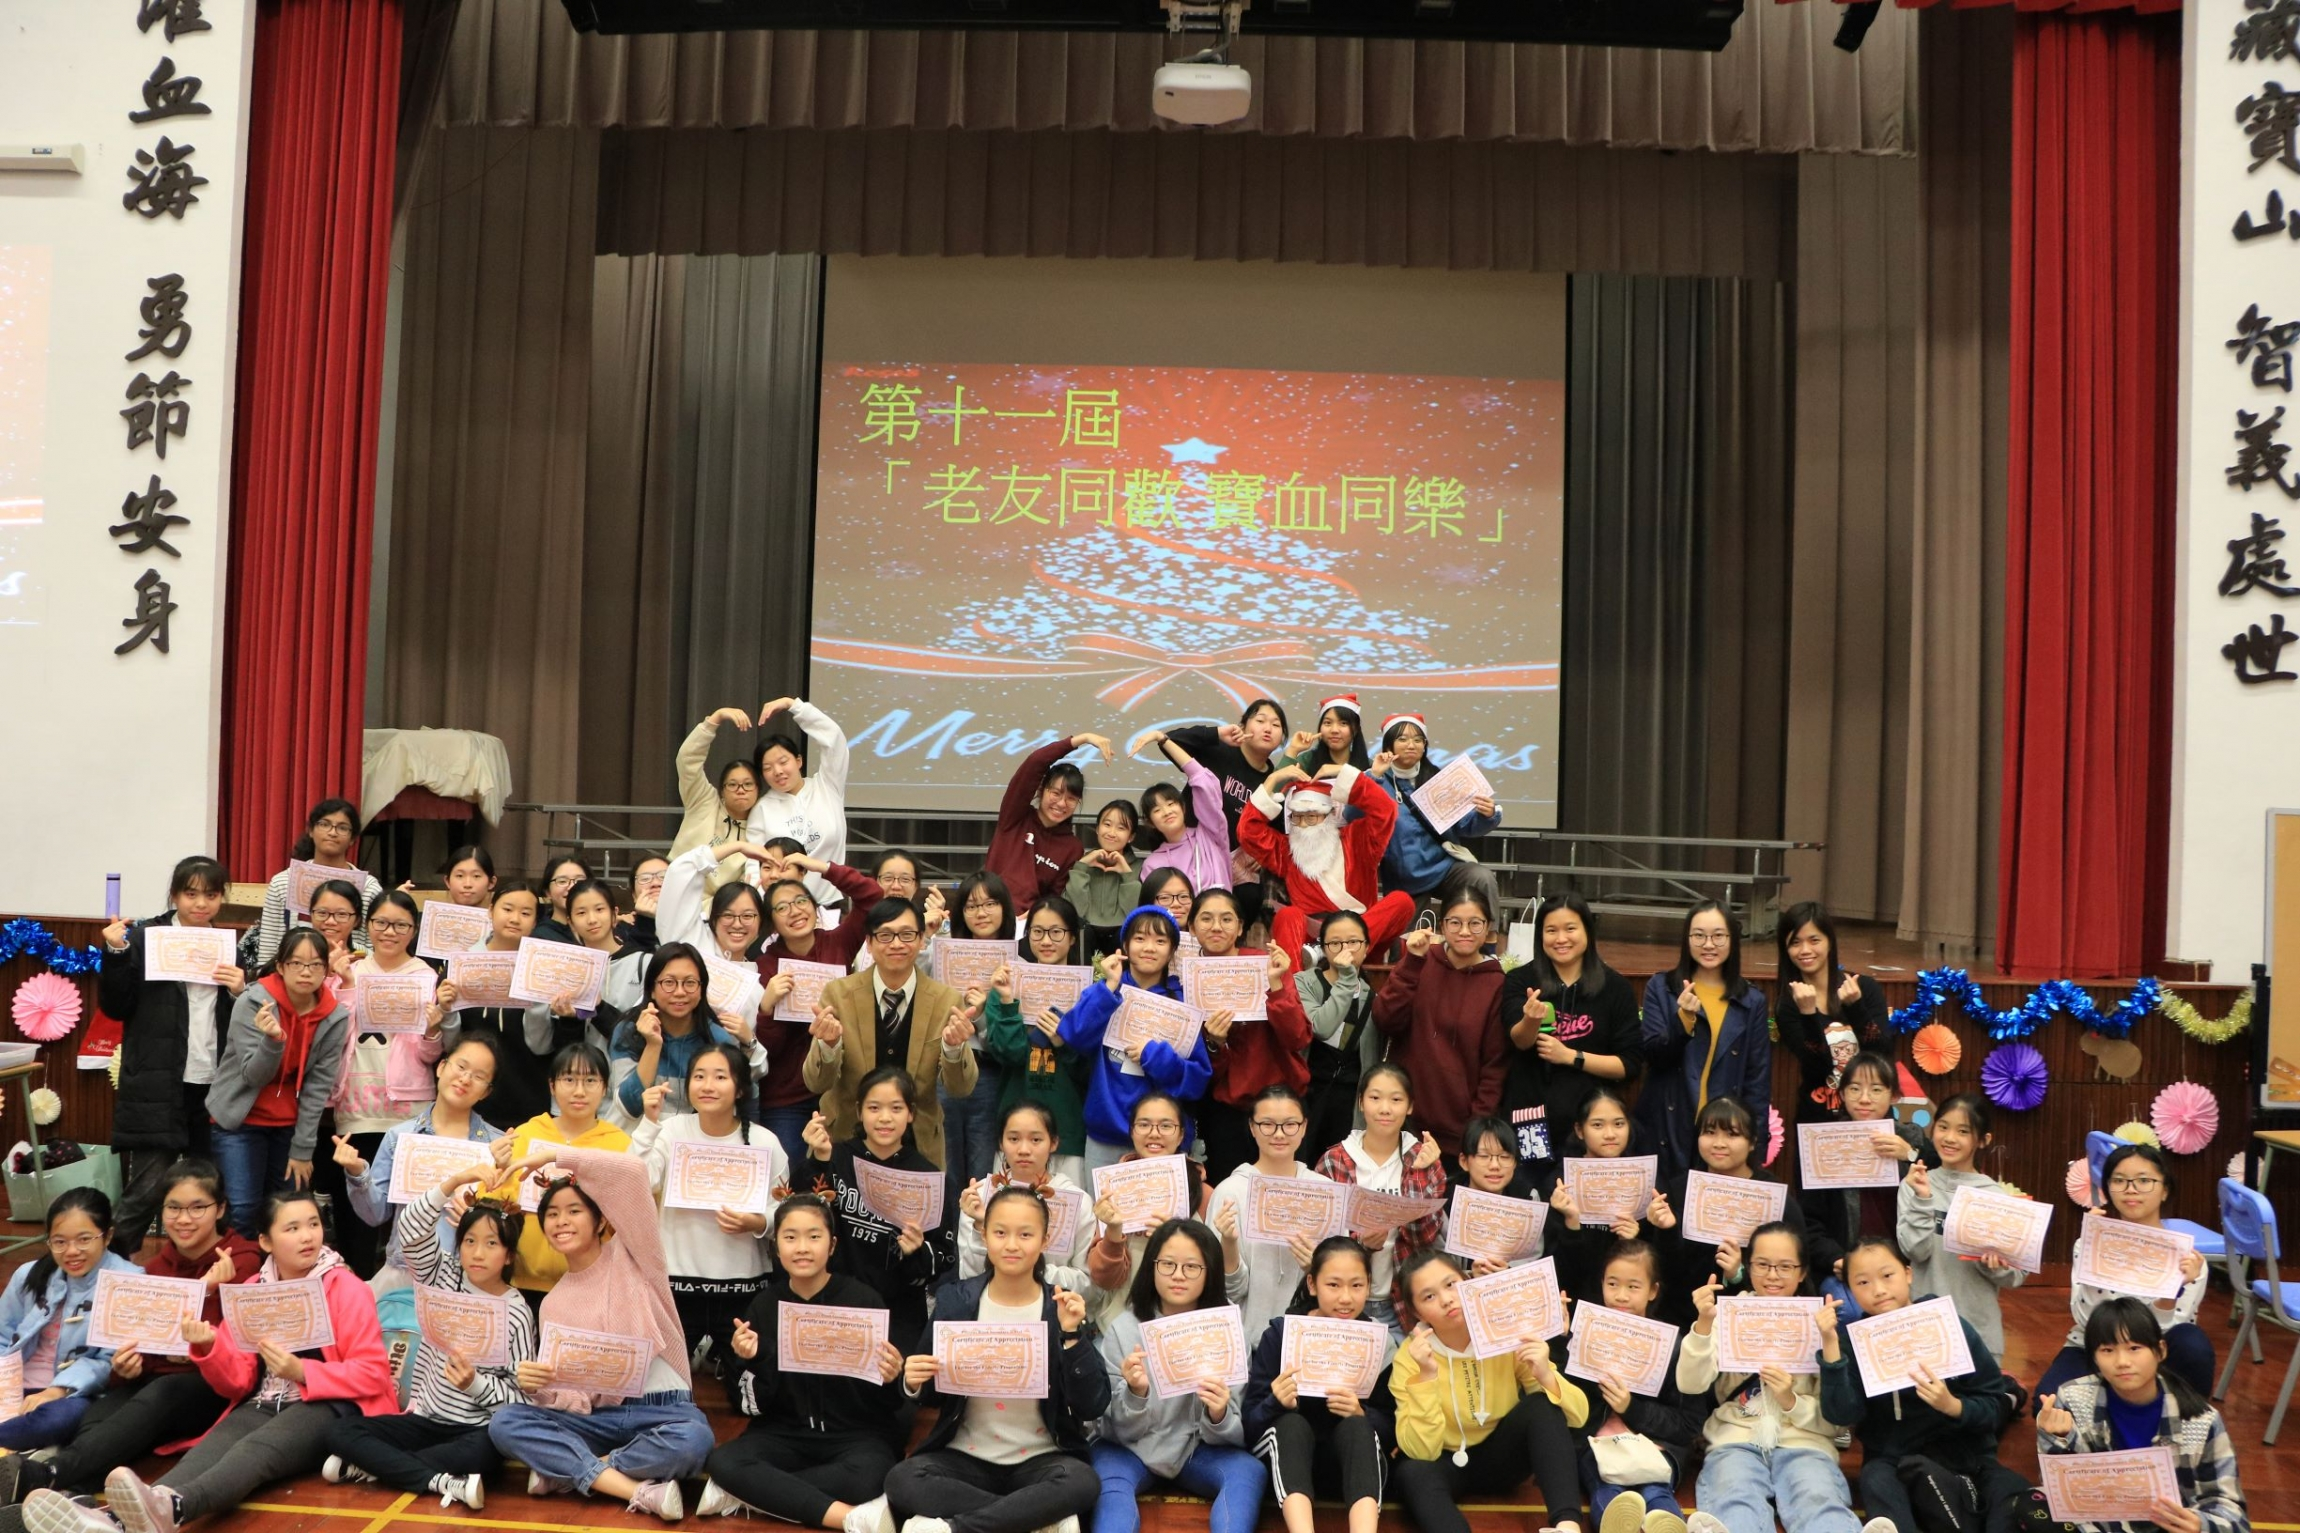 20191220_11th Fun for the Elderly Programme